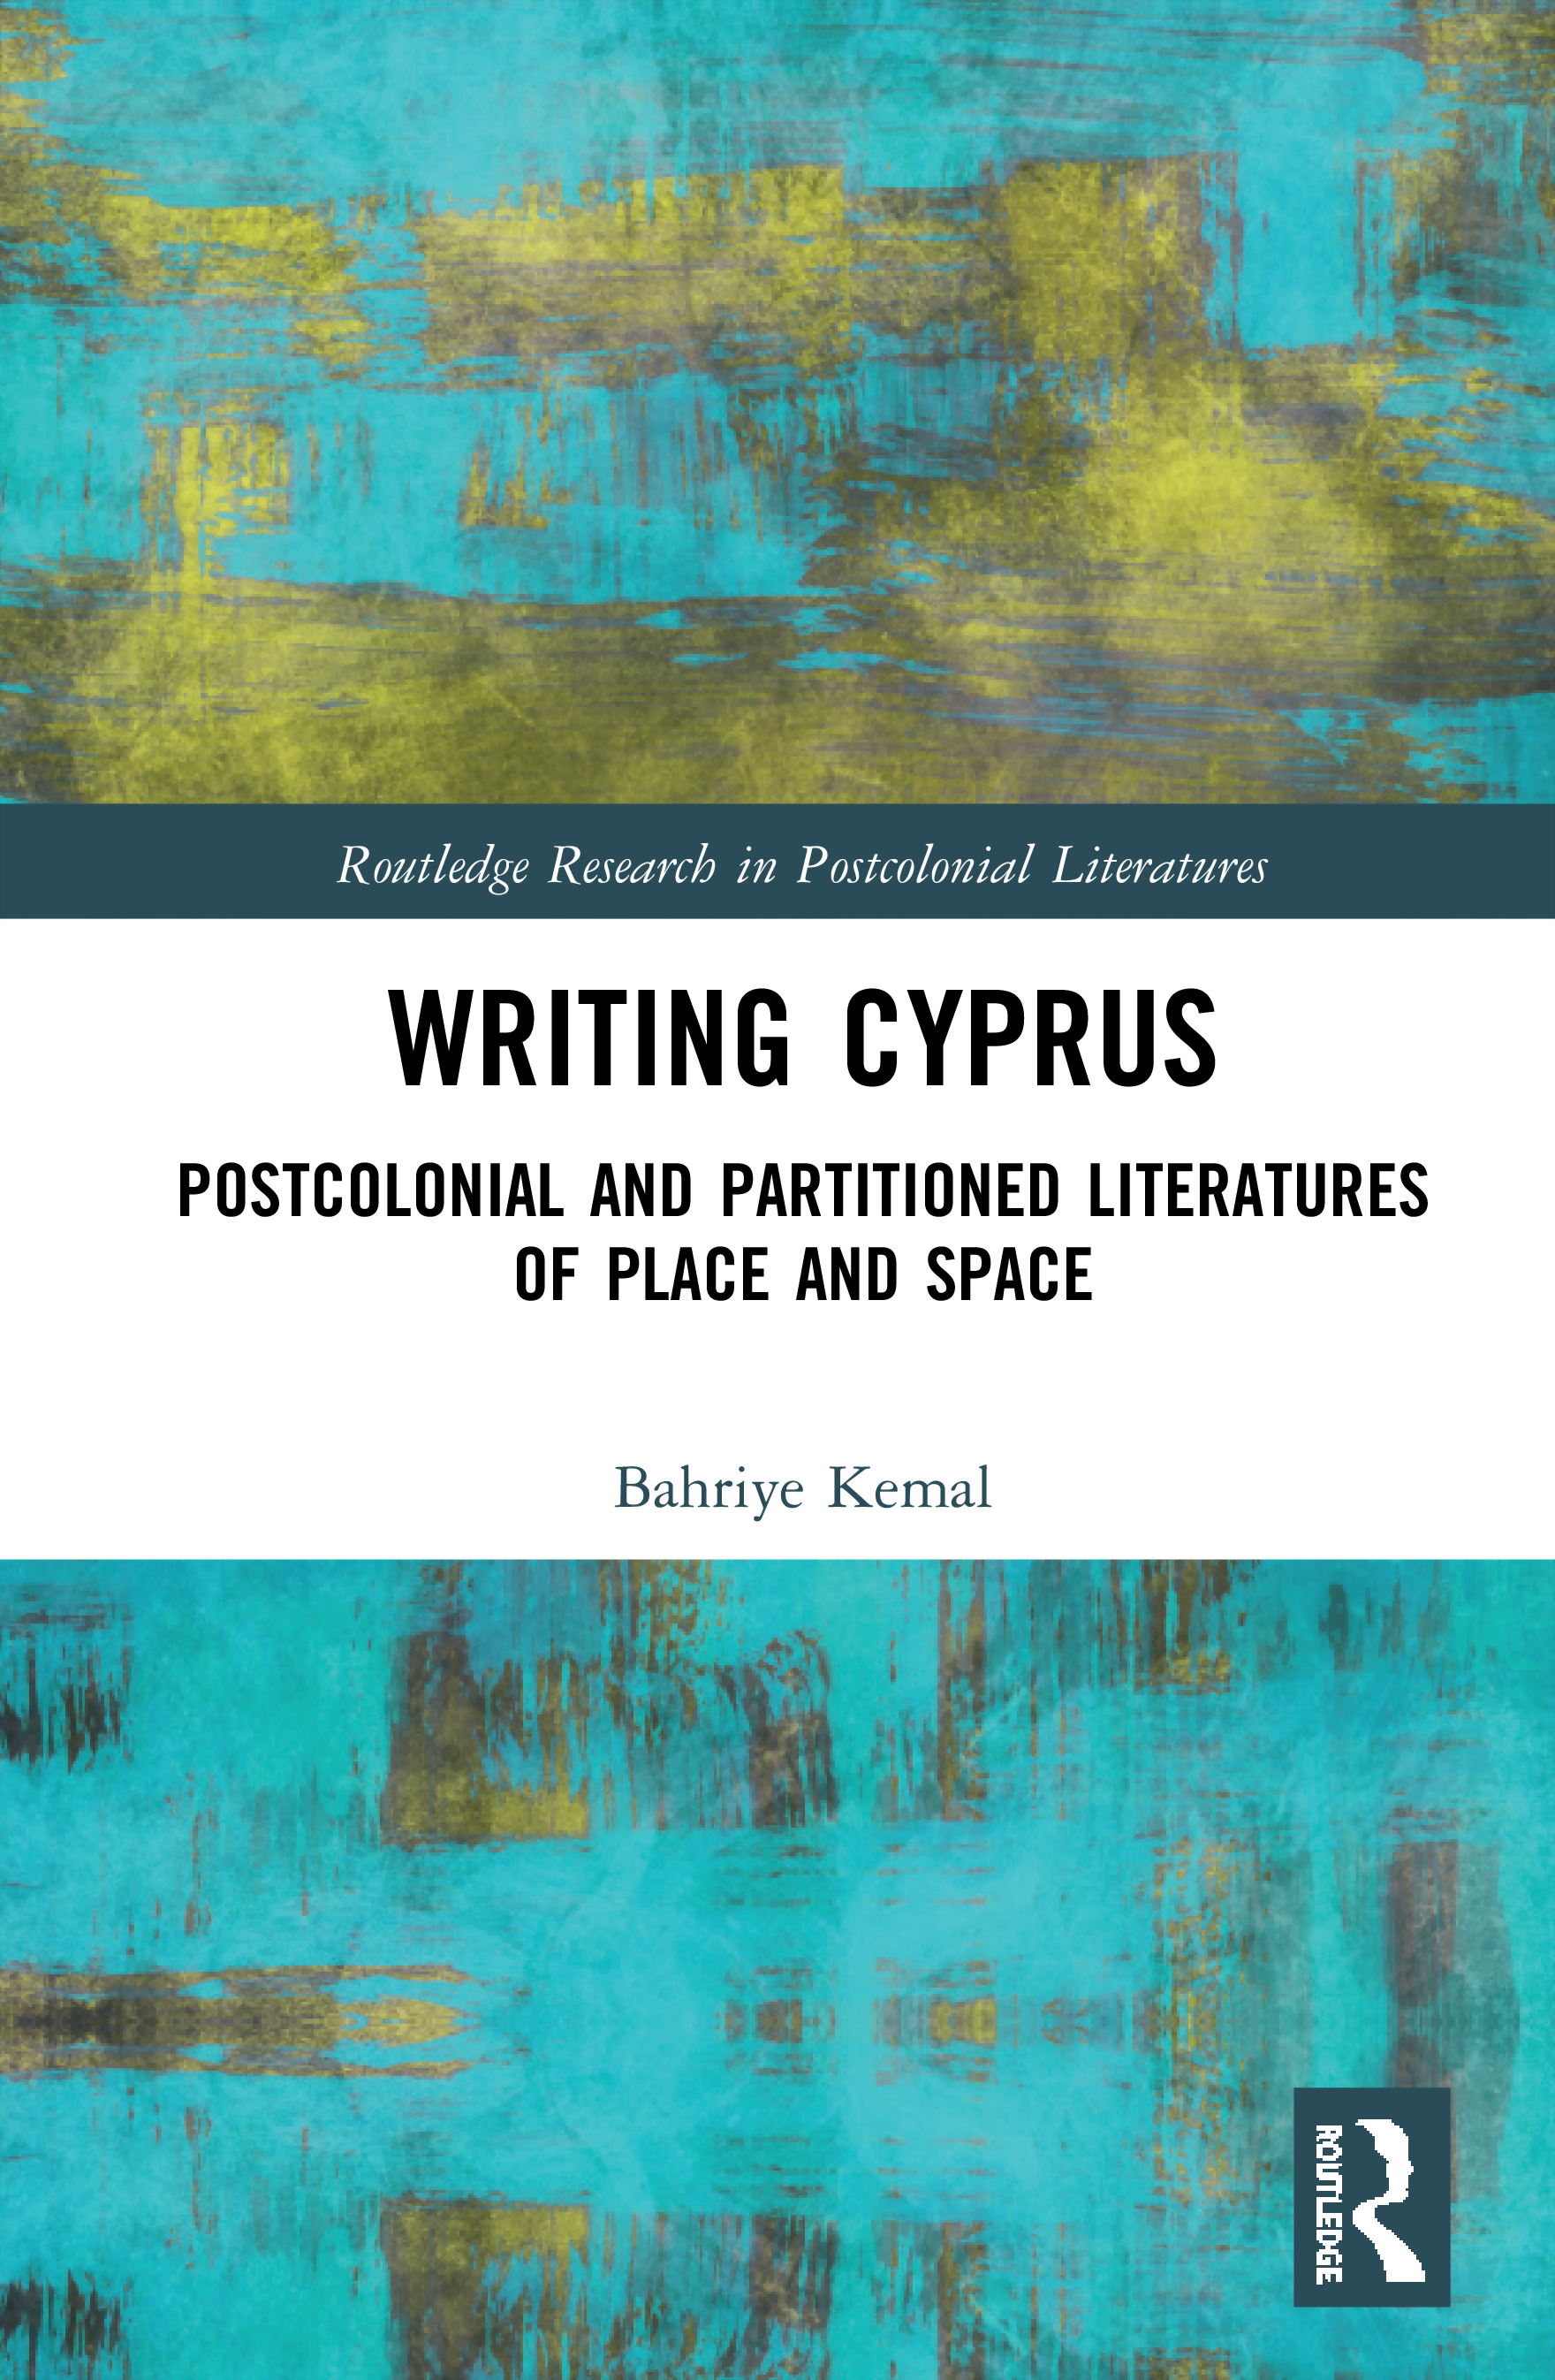 Writing Cyprus: Postcolonial and Partitioned Literatures of Place and Space book cover